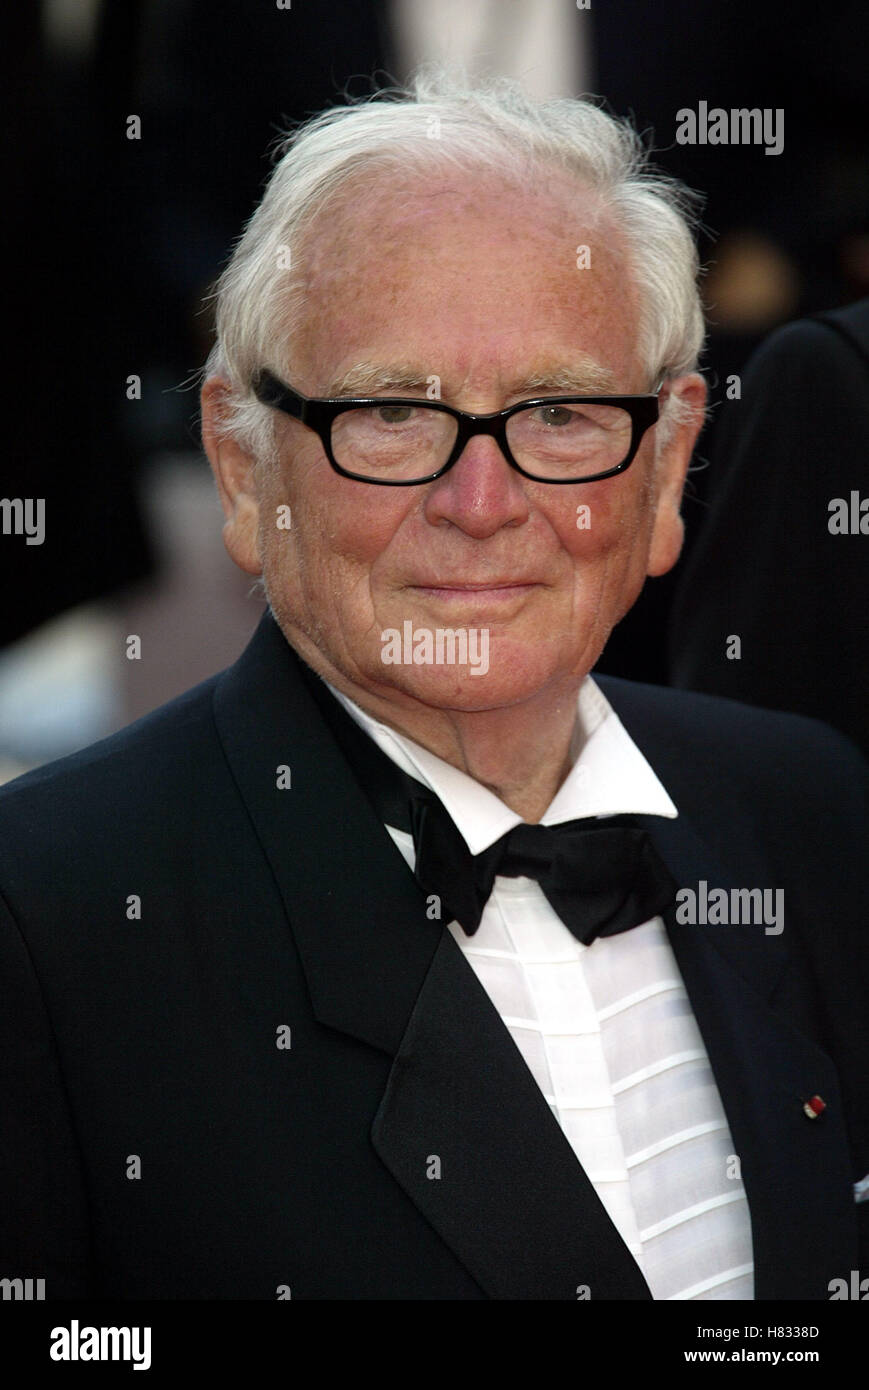 PIERRE CARDIN CANNES FILM FESTIVAL 2002 CANNES FILM FESTIVAL CANNES FRANCE 19 May 2002 - Stock Image